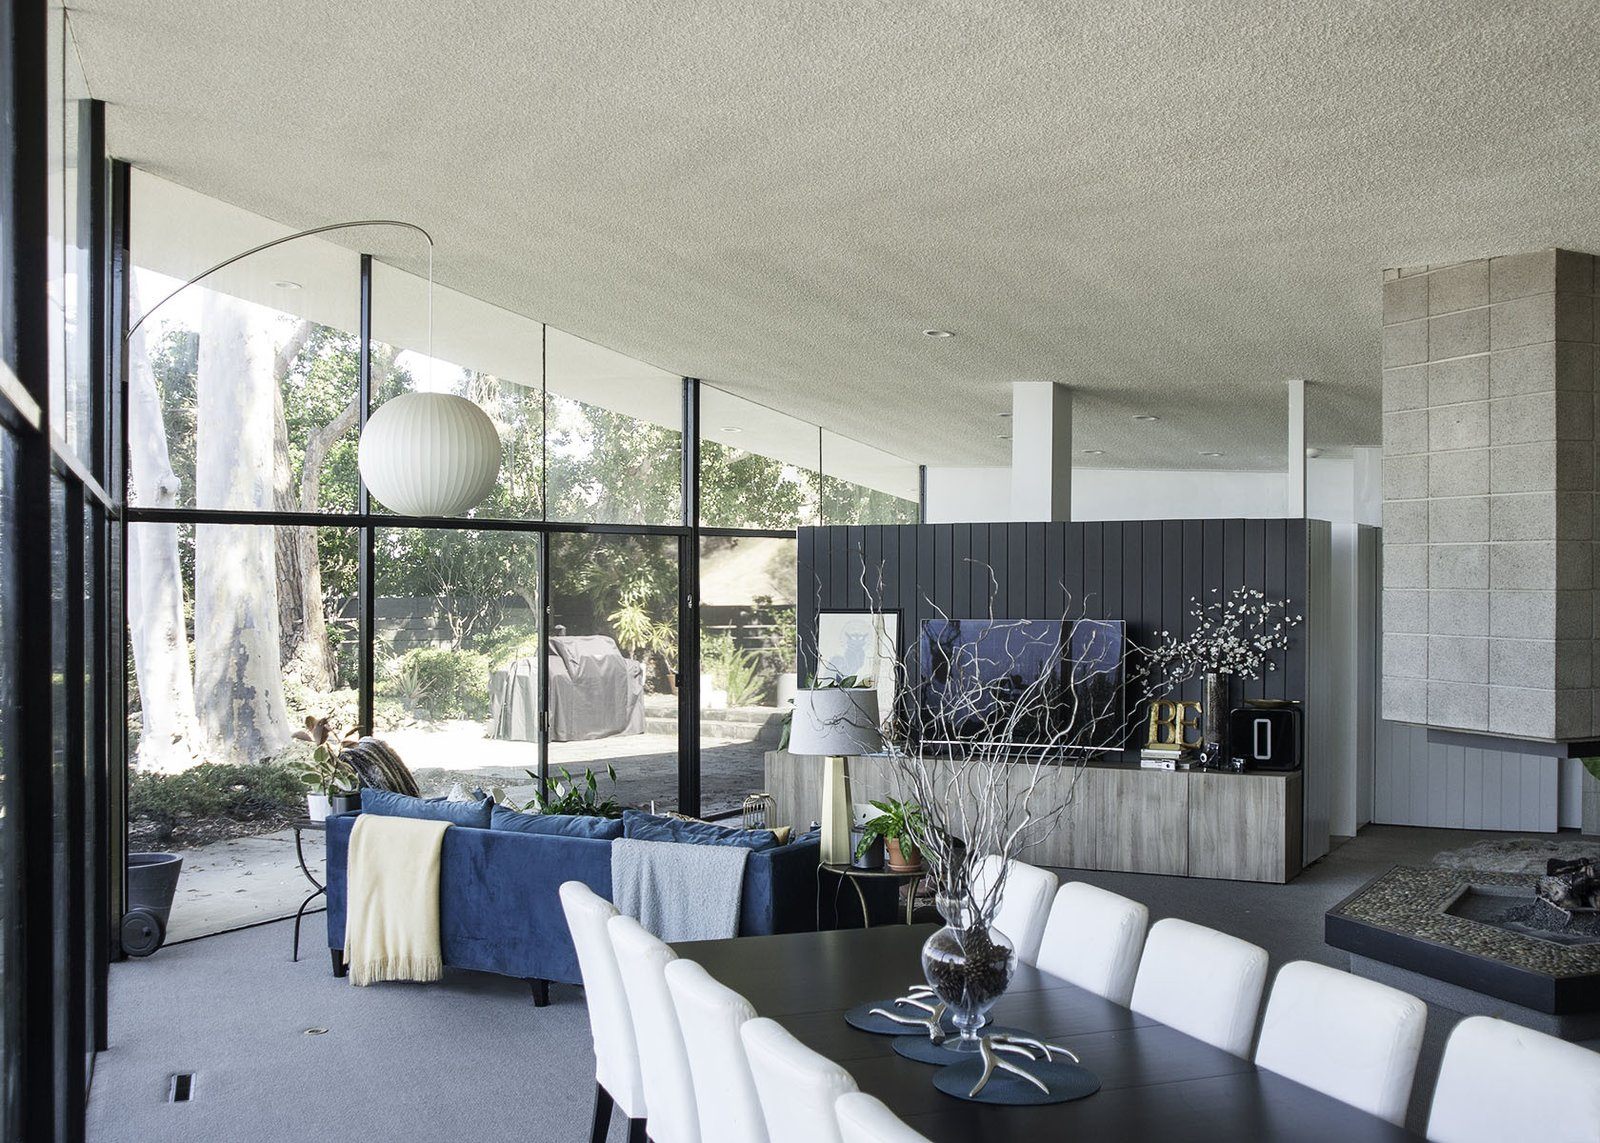 Living Room, Recessed Lighting, Chair, Table, Pendant Lighting, Sofa, Carpet Floor, Two-Sided Fireplace, End Tables, and Table Lighting  The stone fireplace anchors the open-plan living/dining room.      Photo 4 of 13 in A 1958 Midcentury With Stunning L.A. Views Lists For $2.2M